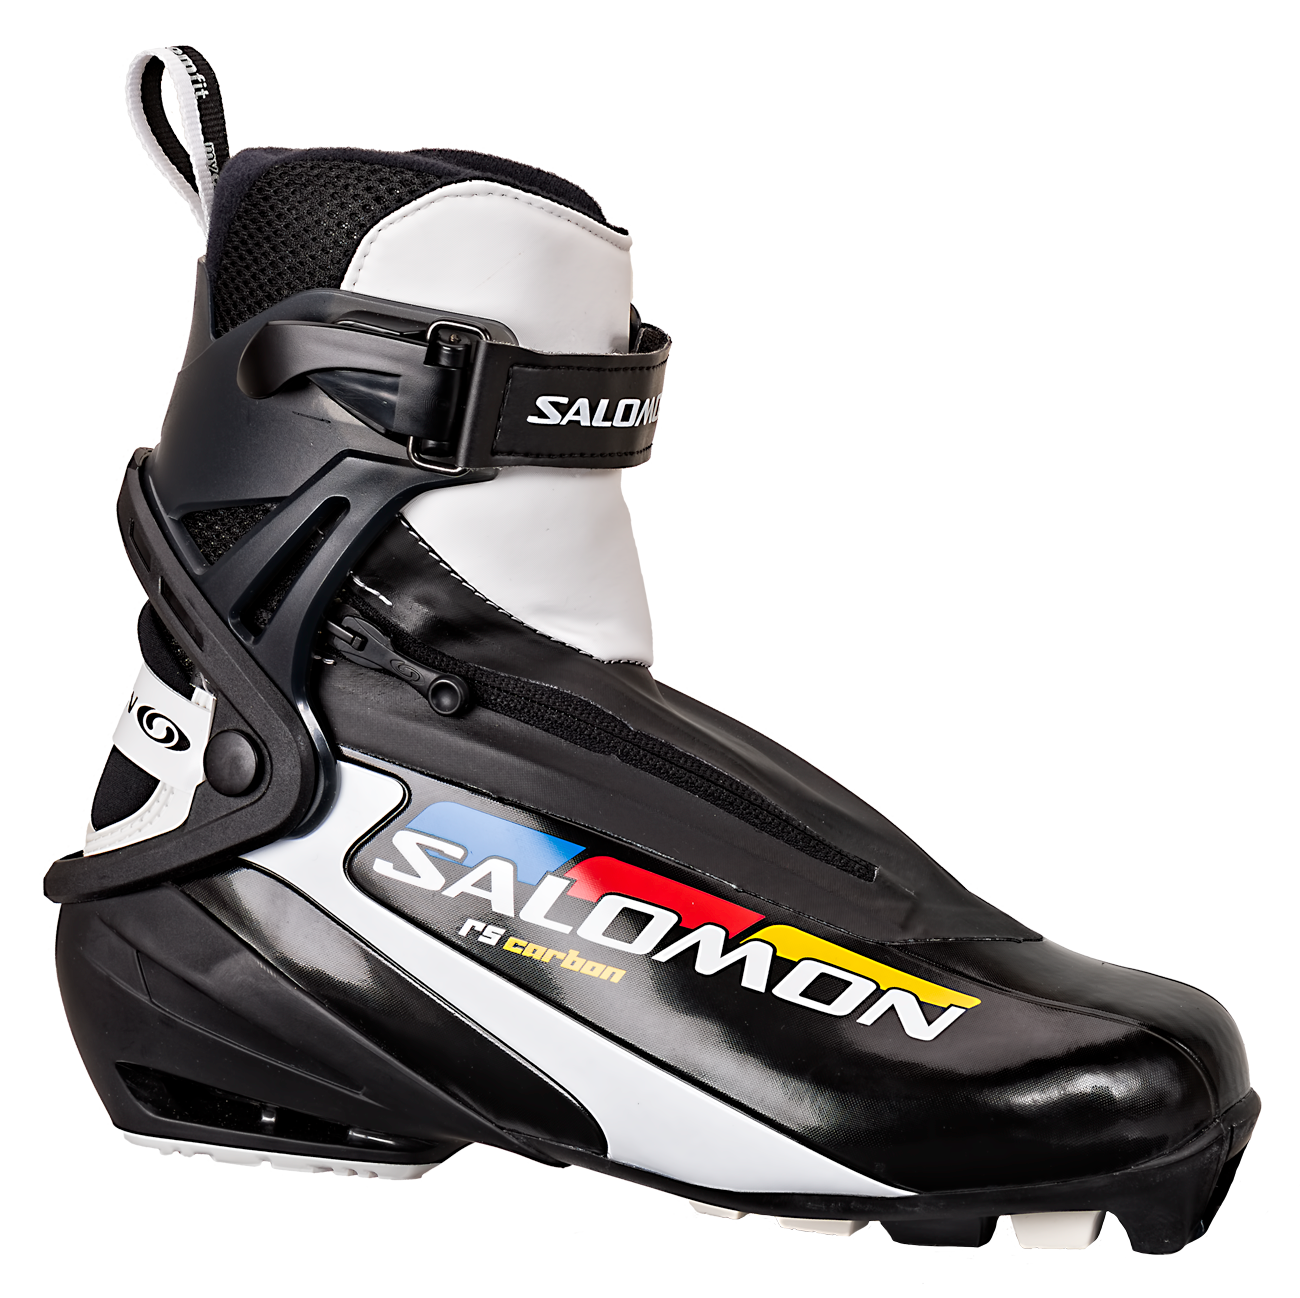 newest 22af5 4384b Salomon RS Carbon. SalomonRS Carbon